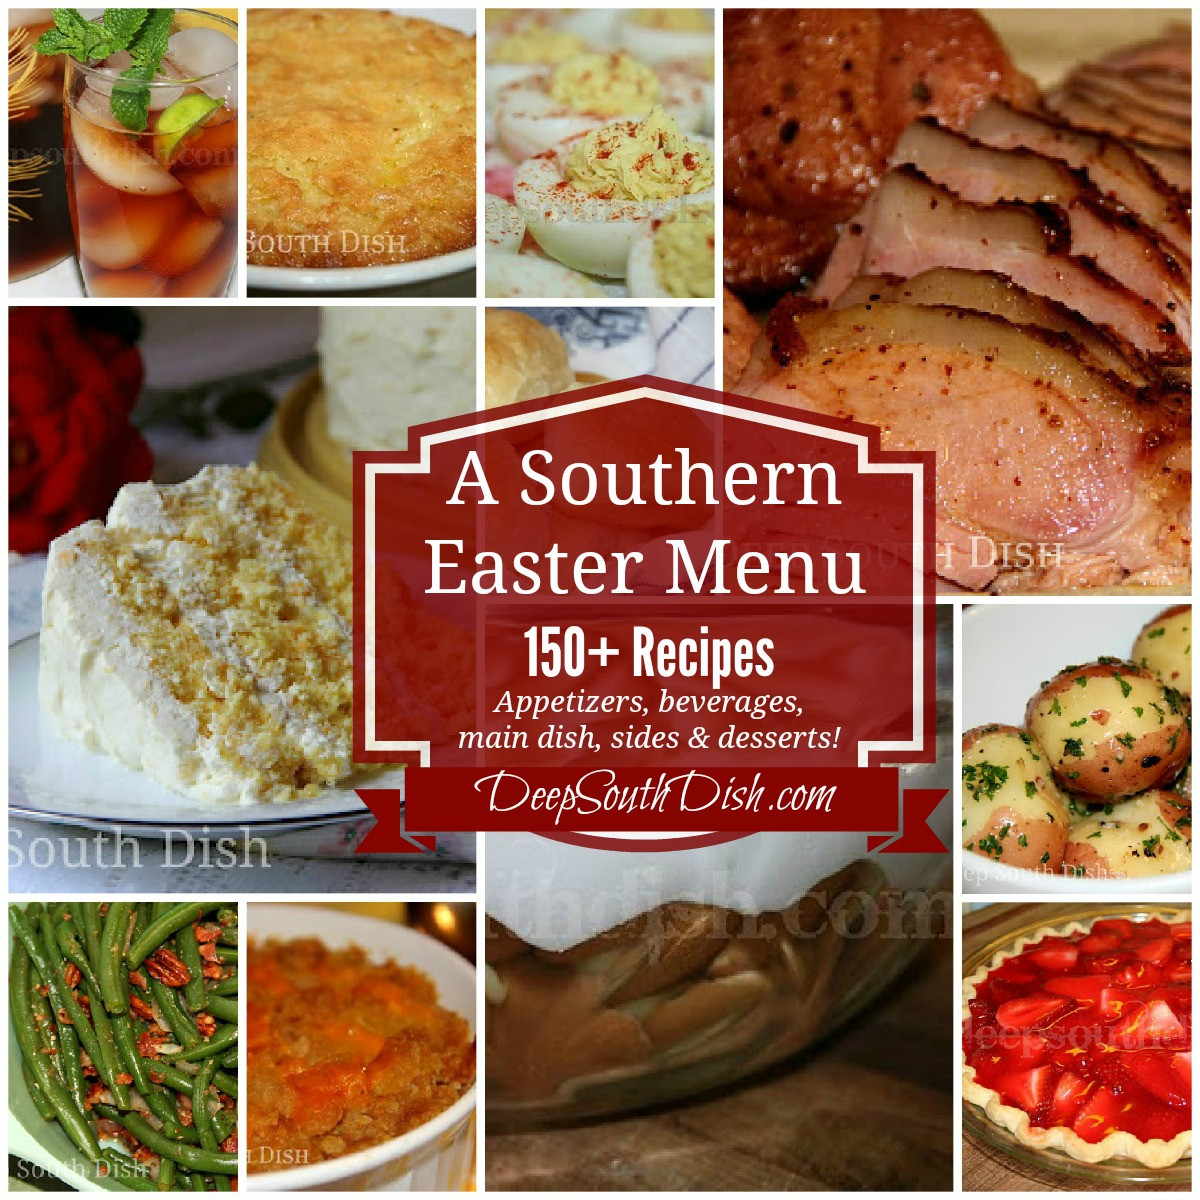 Preparing Easter Dinner  Deep South Dish Southern Easter Menu Ideas and Recipes